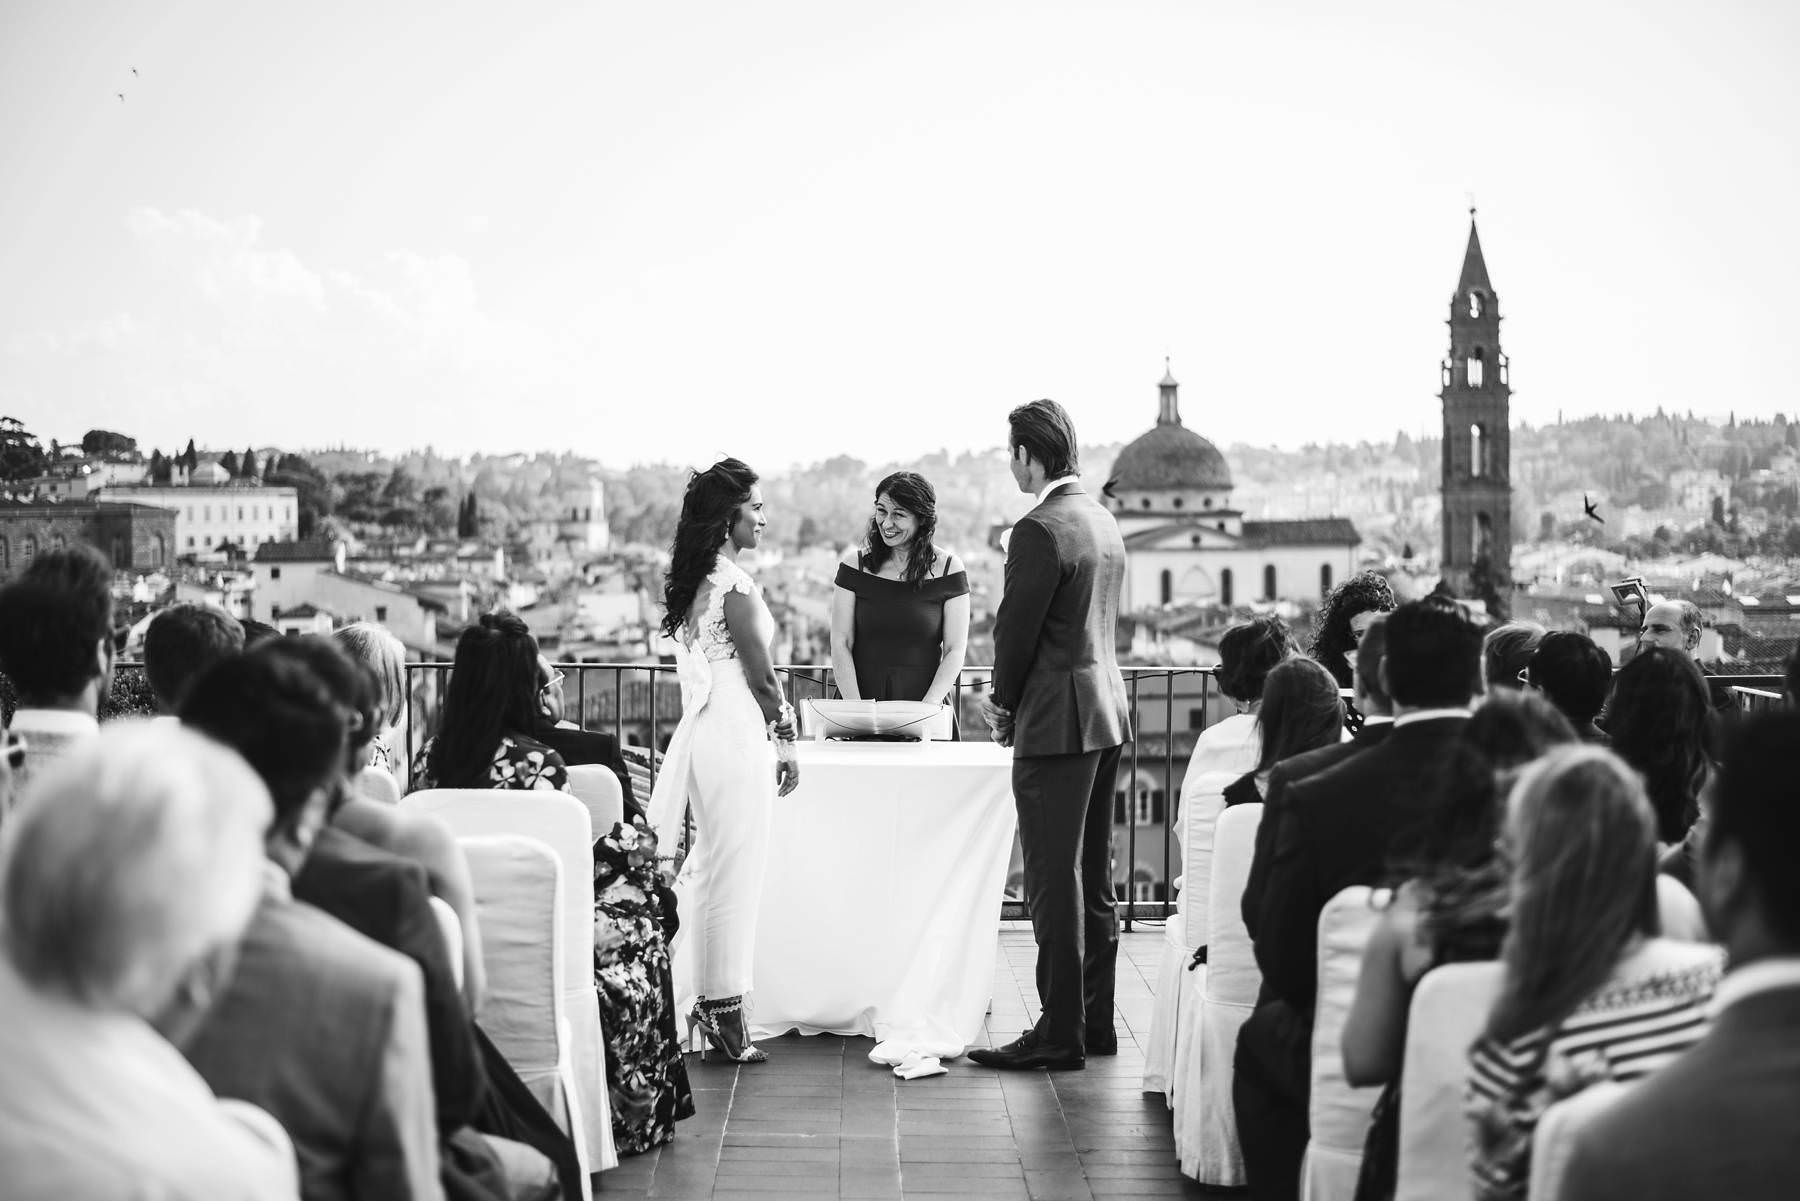 Exclusive wedding ideas: say Yes overlooking the best view of Florence